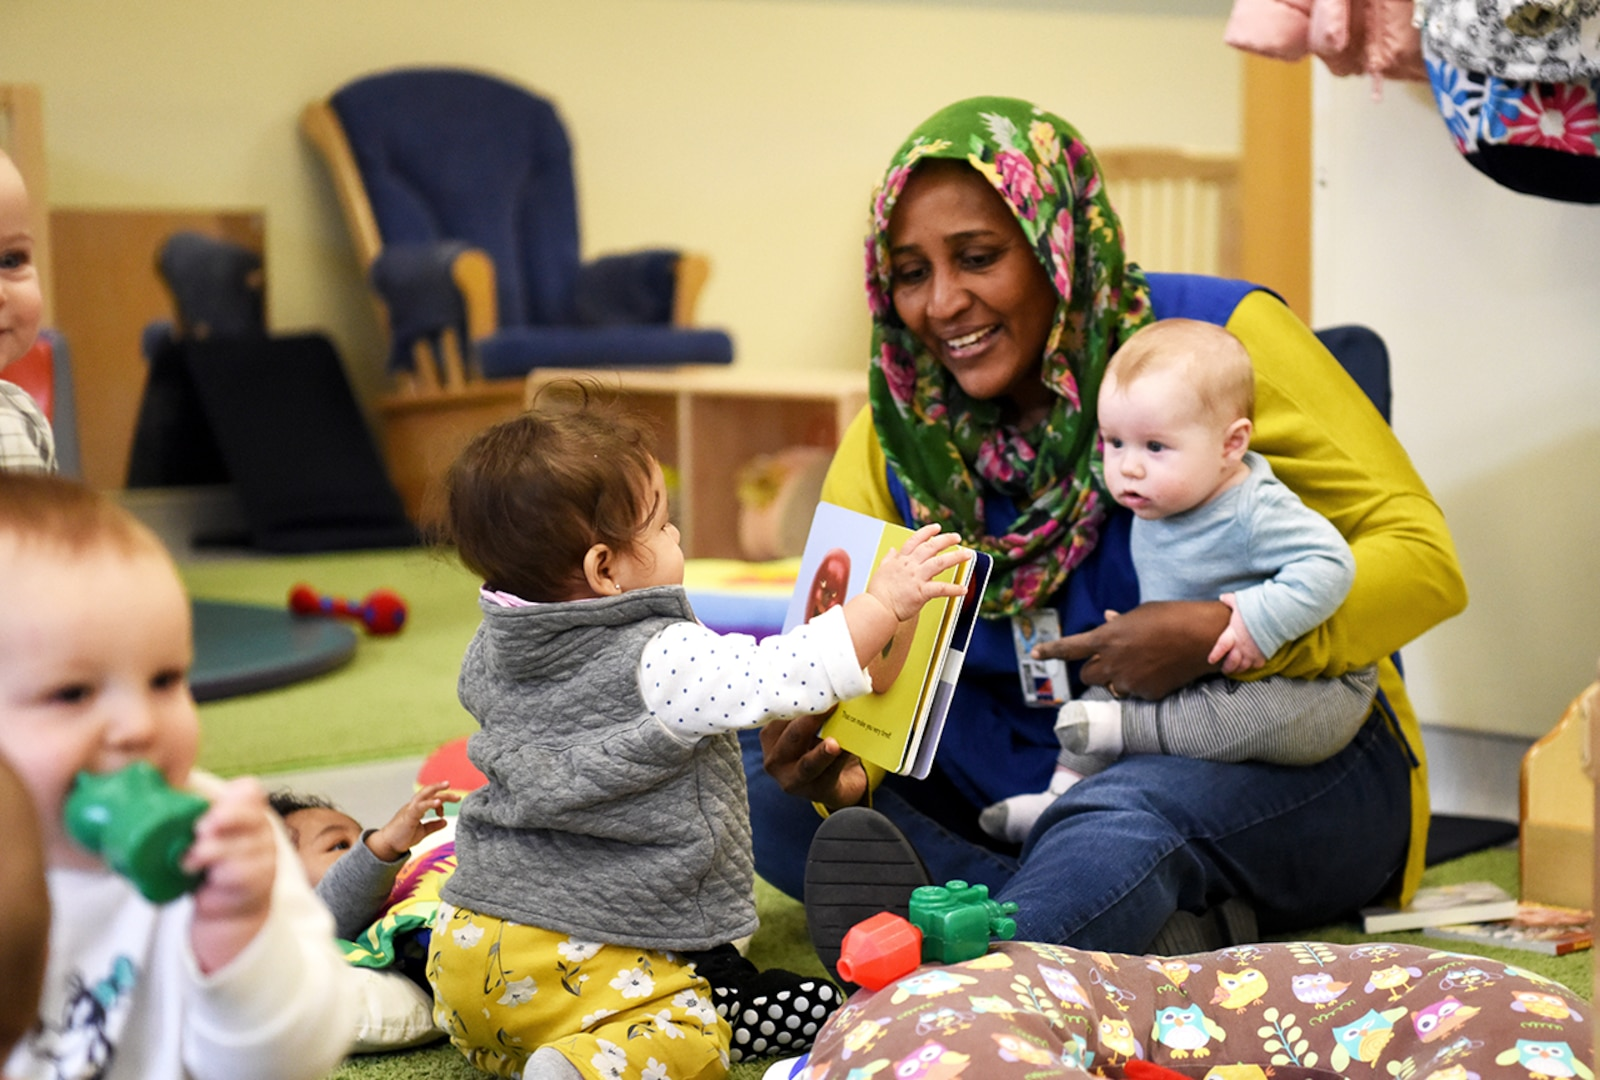 Emtithal Sulieman reads a book with colorful illustrations to help develop babies' voice and image-recognition skills at DLA's Fort Belvoir, Virginia, Child Development Center.